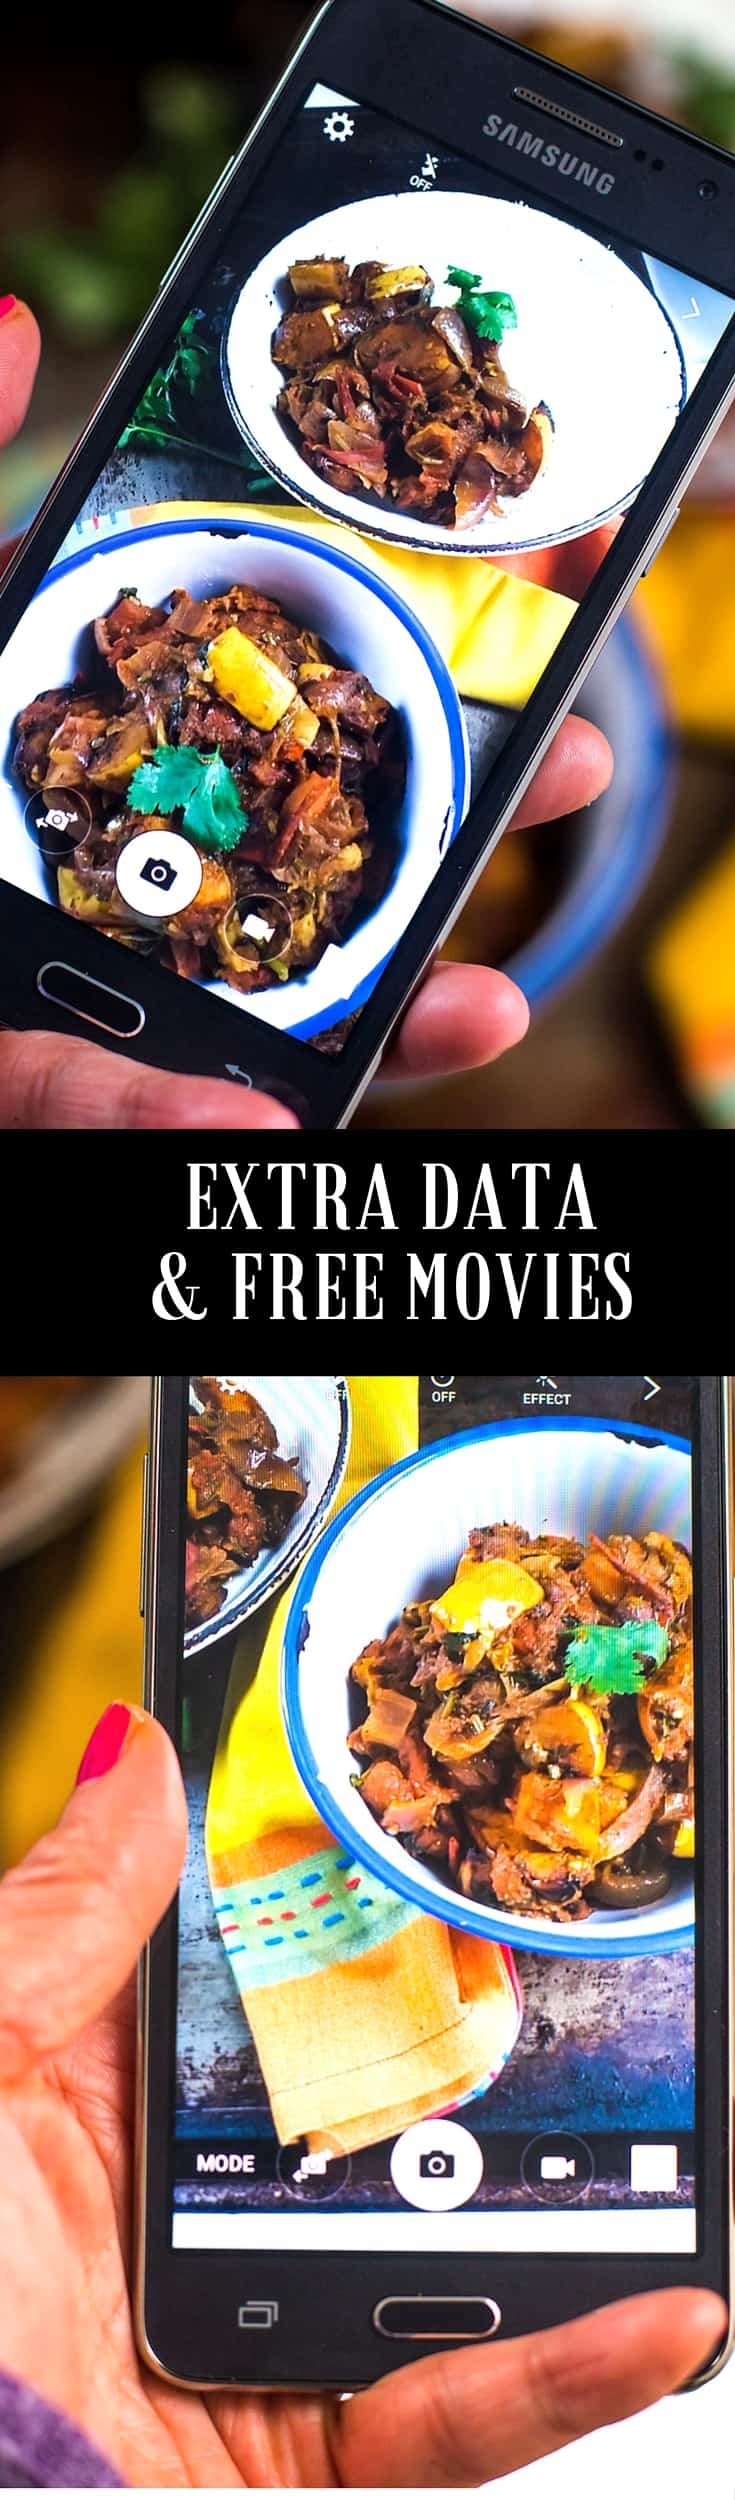 Walmart Family Mobile Plus: Extra Data and Free Movies